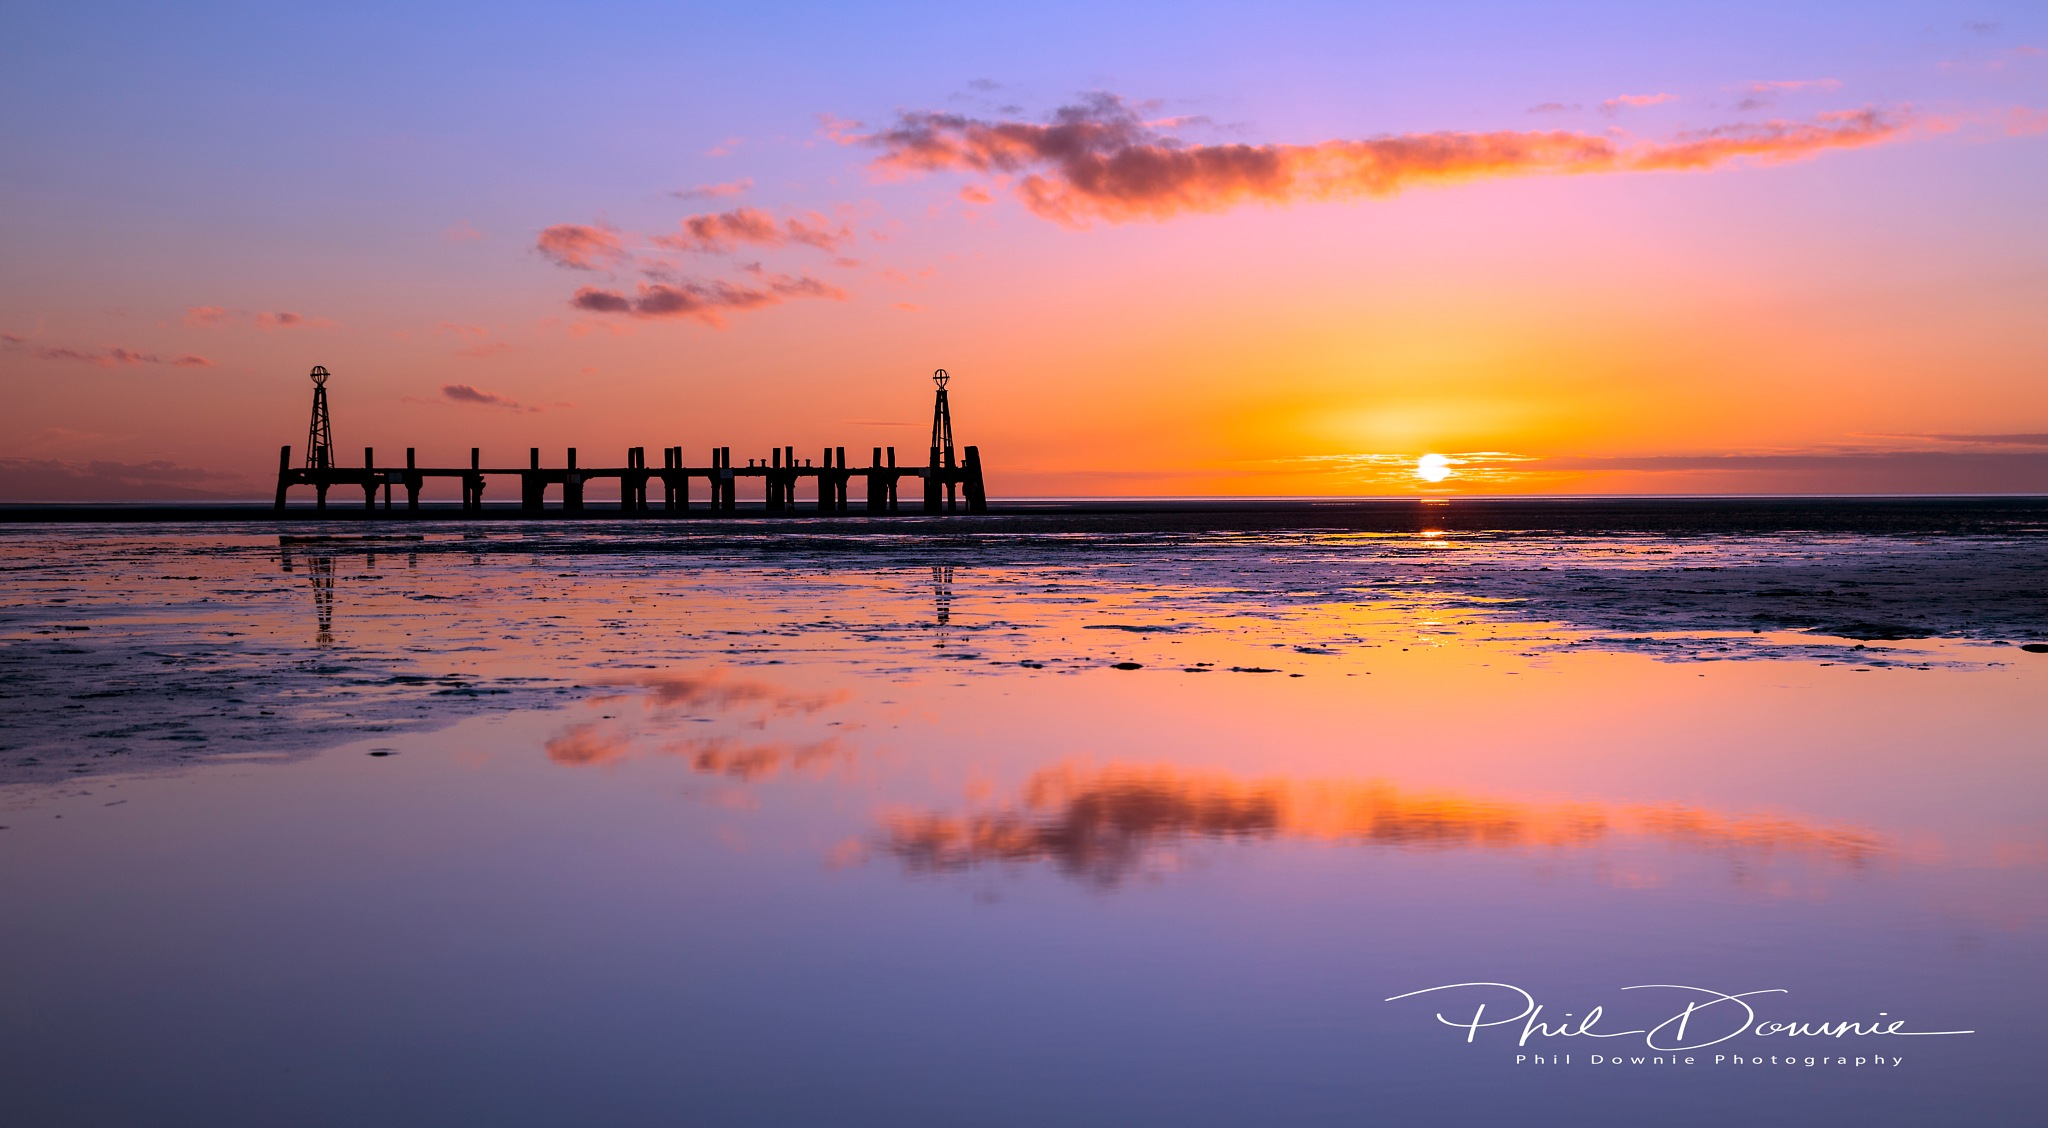 Lilac sunset by Phil Downie